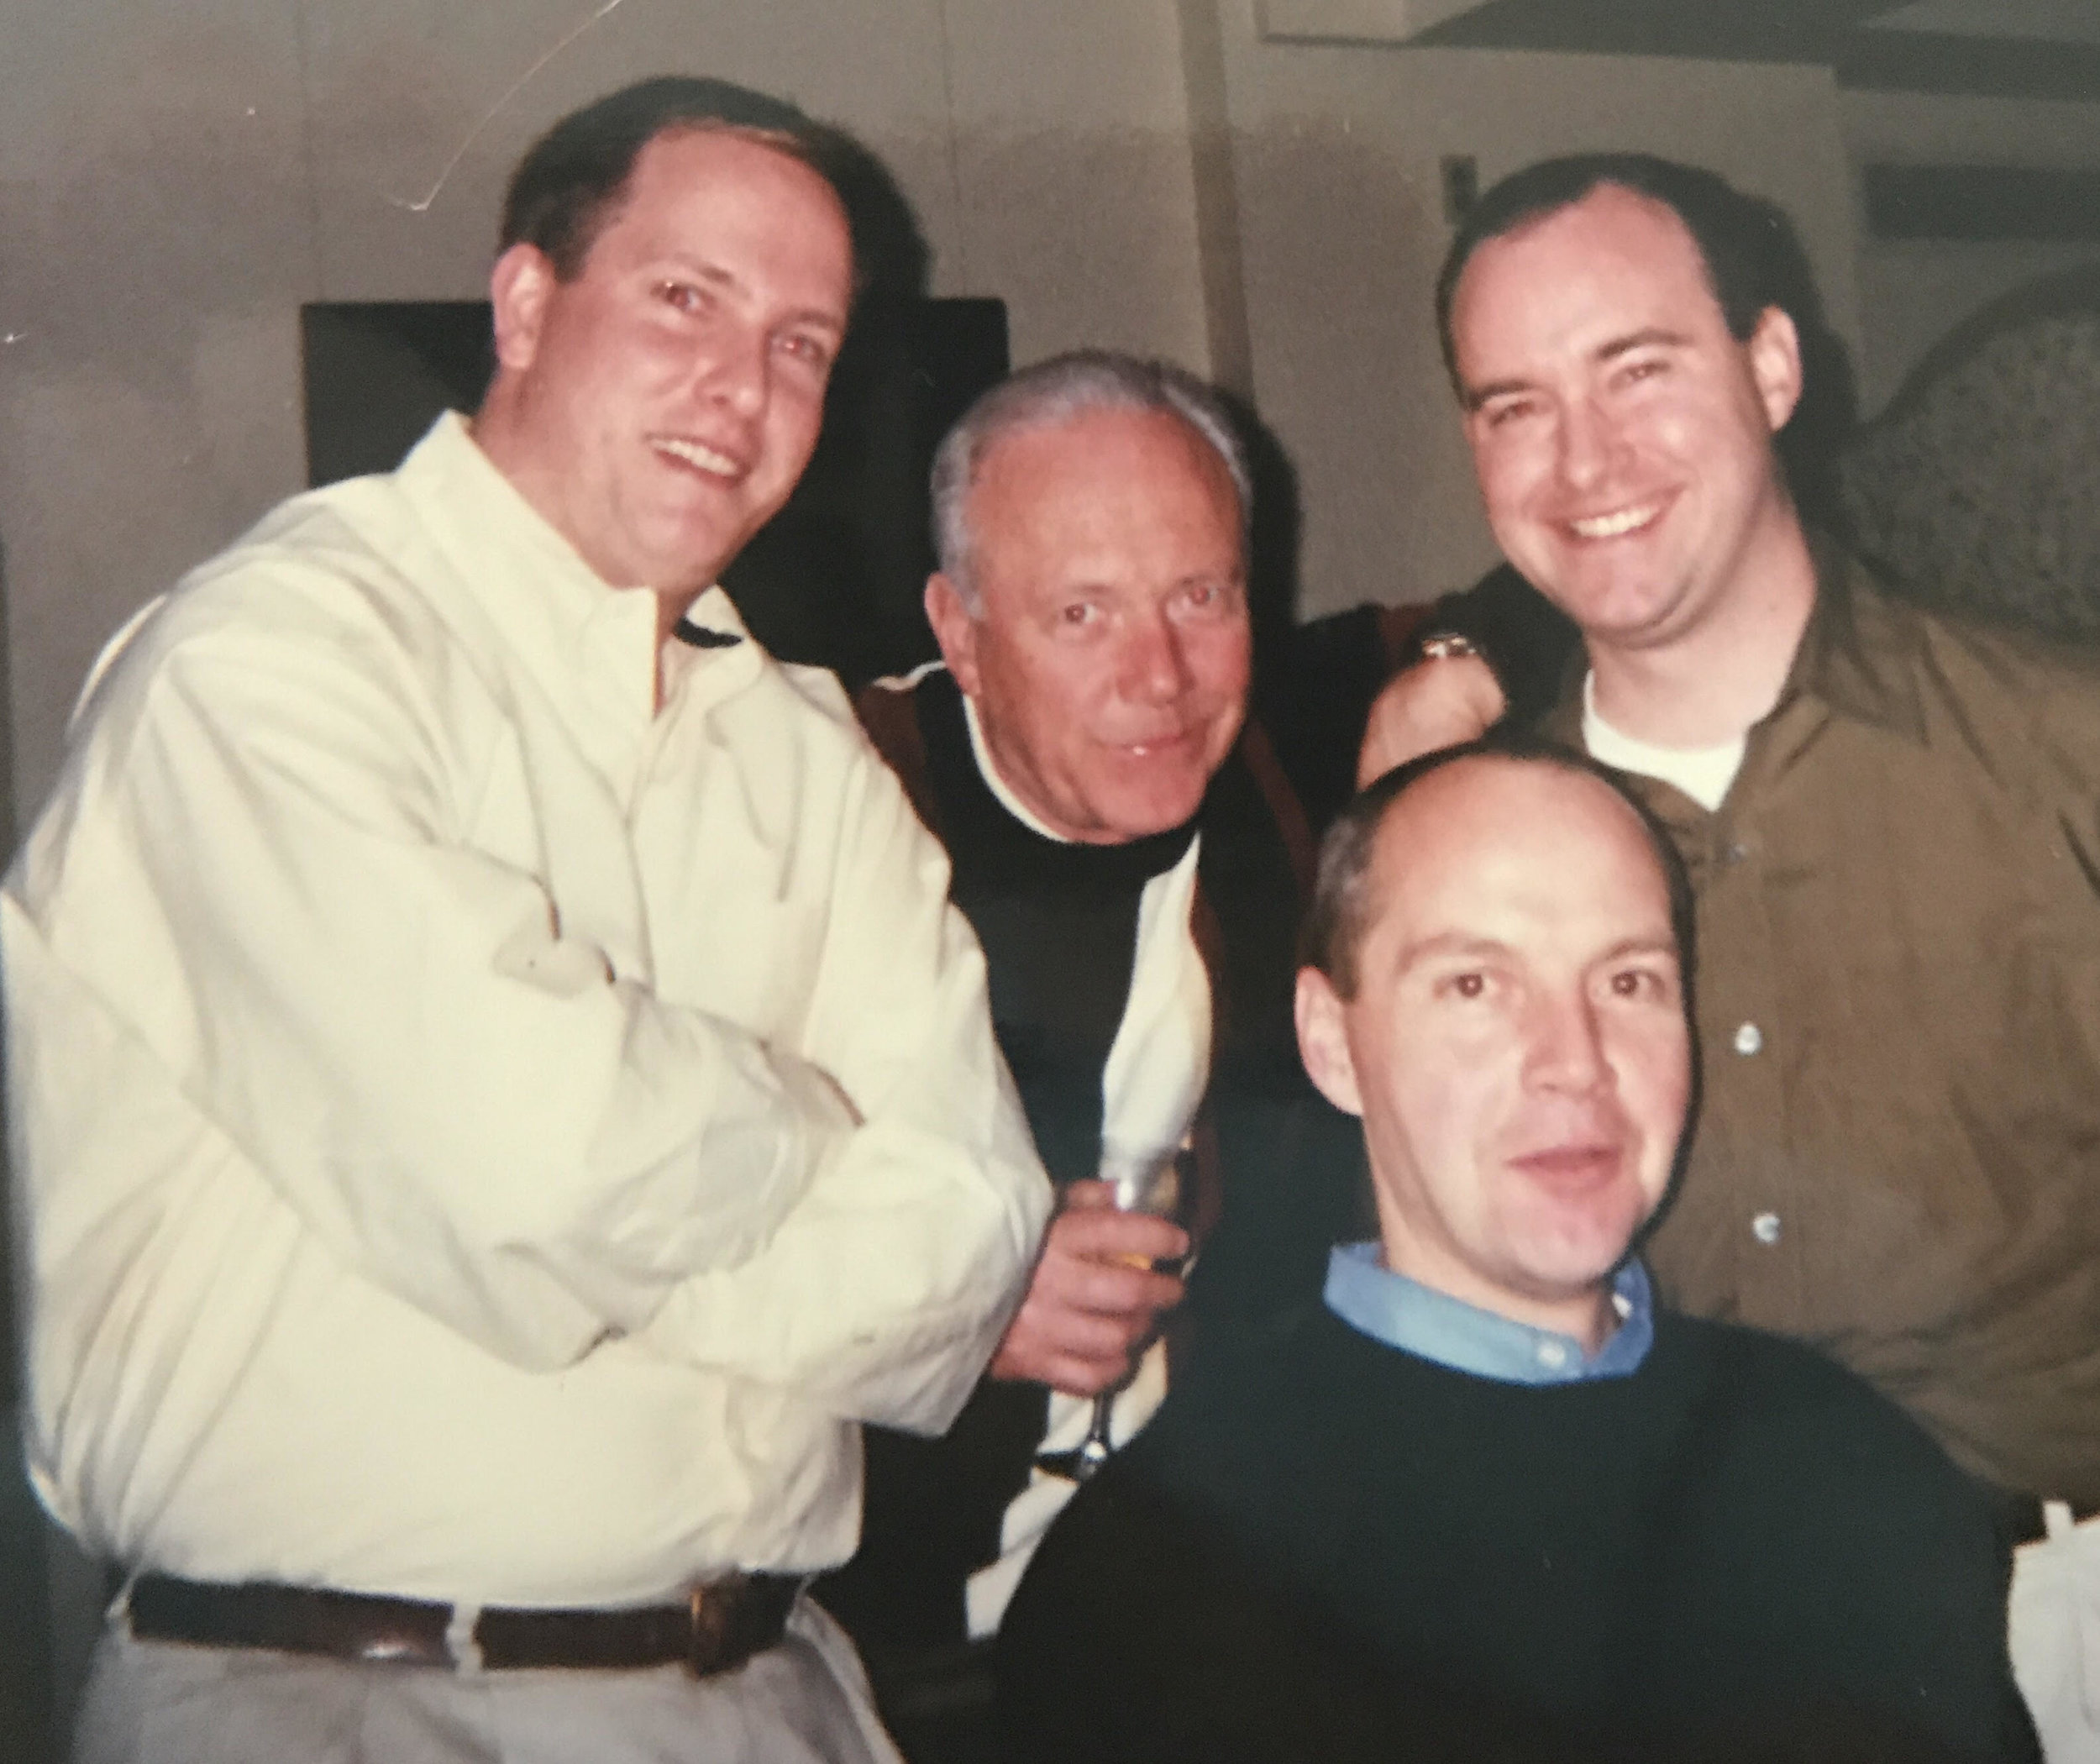 Bill Lane flanked by GE colleagues Christian Flathman (left) and Jeff DeMarrais (right) with me seated. This is a 2001 send-off party for Jeff who had been named head of communications for our locomotive business in Erie, PA.